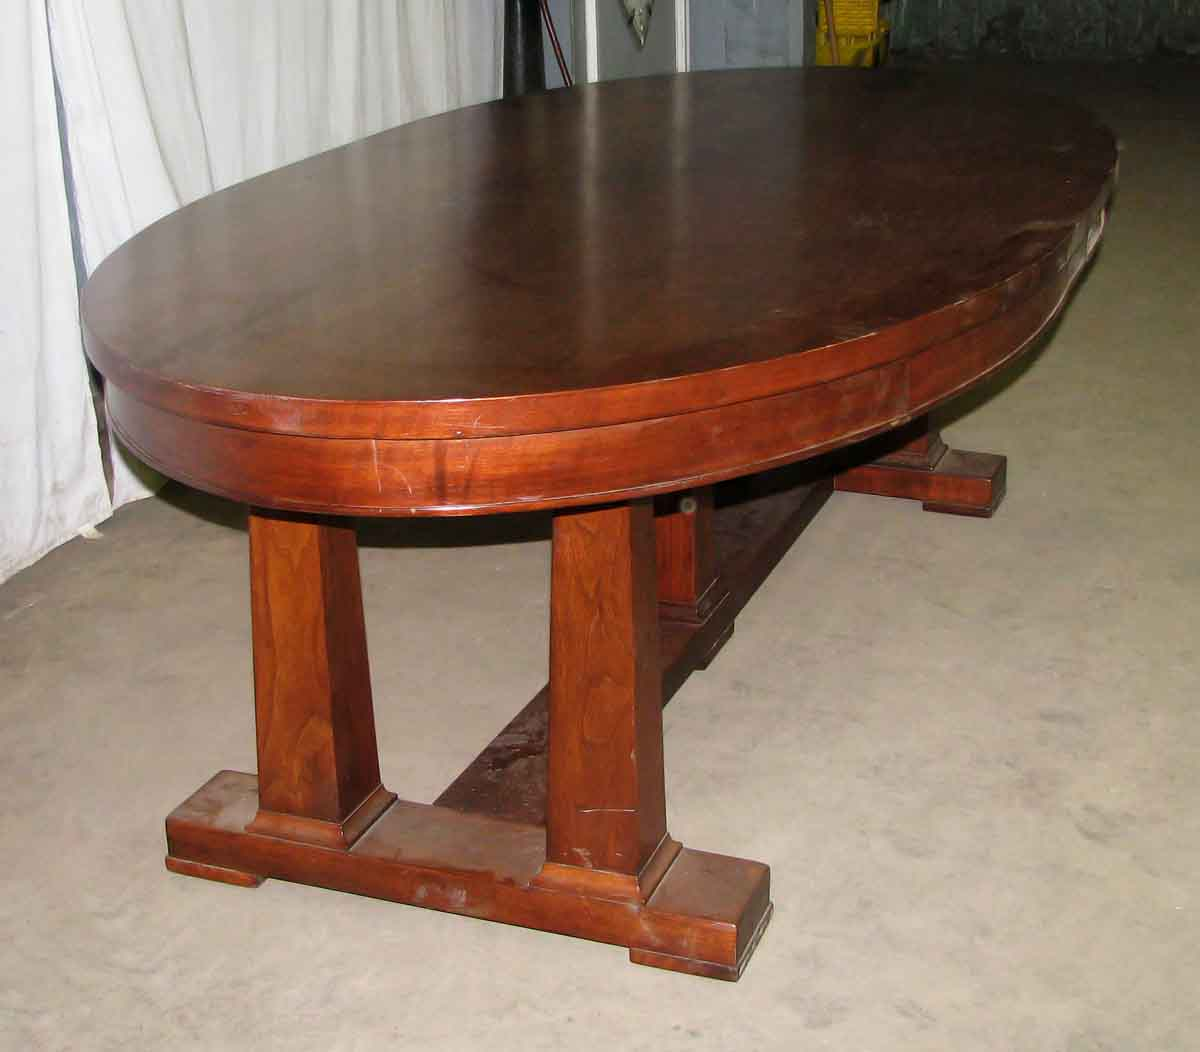 Antique Oval Library Table With Walnut Veneer